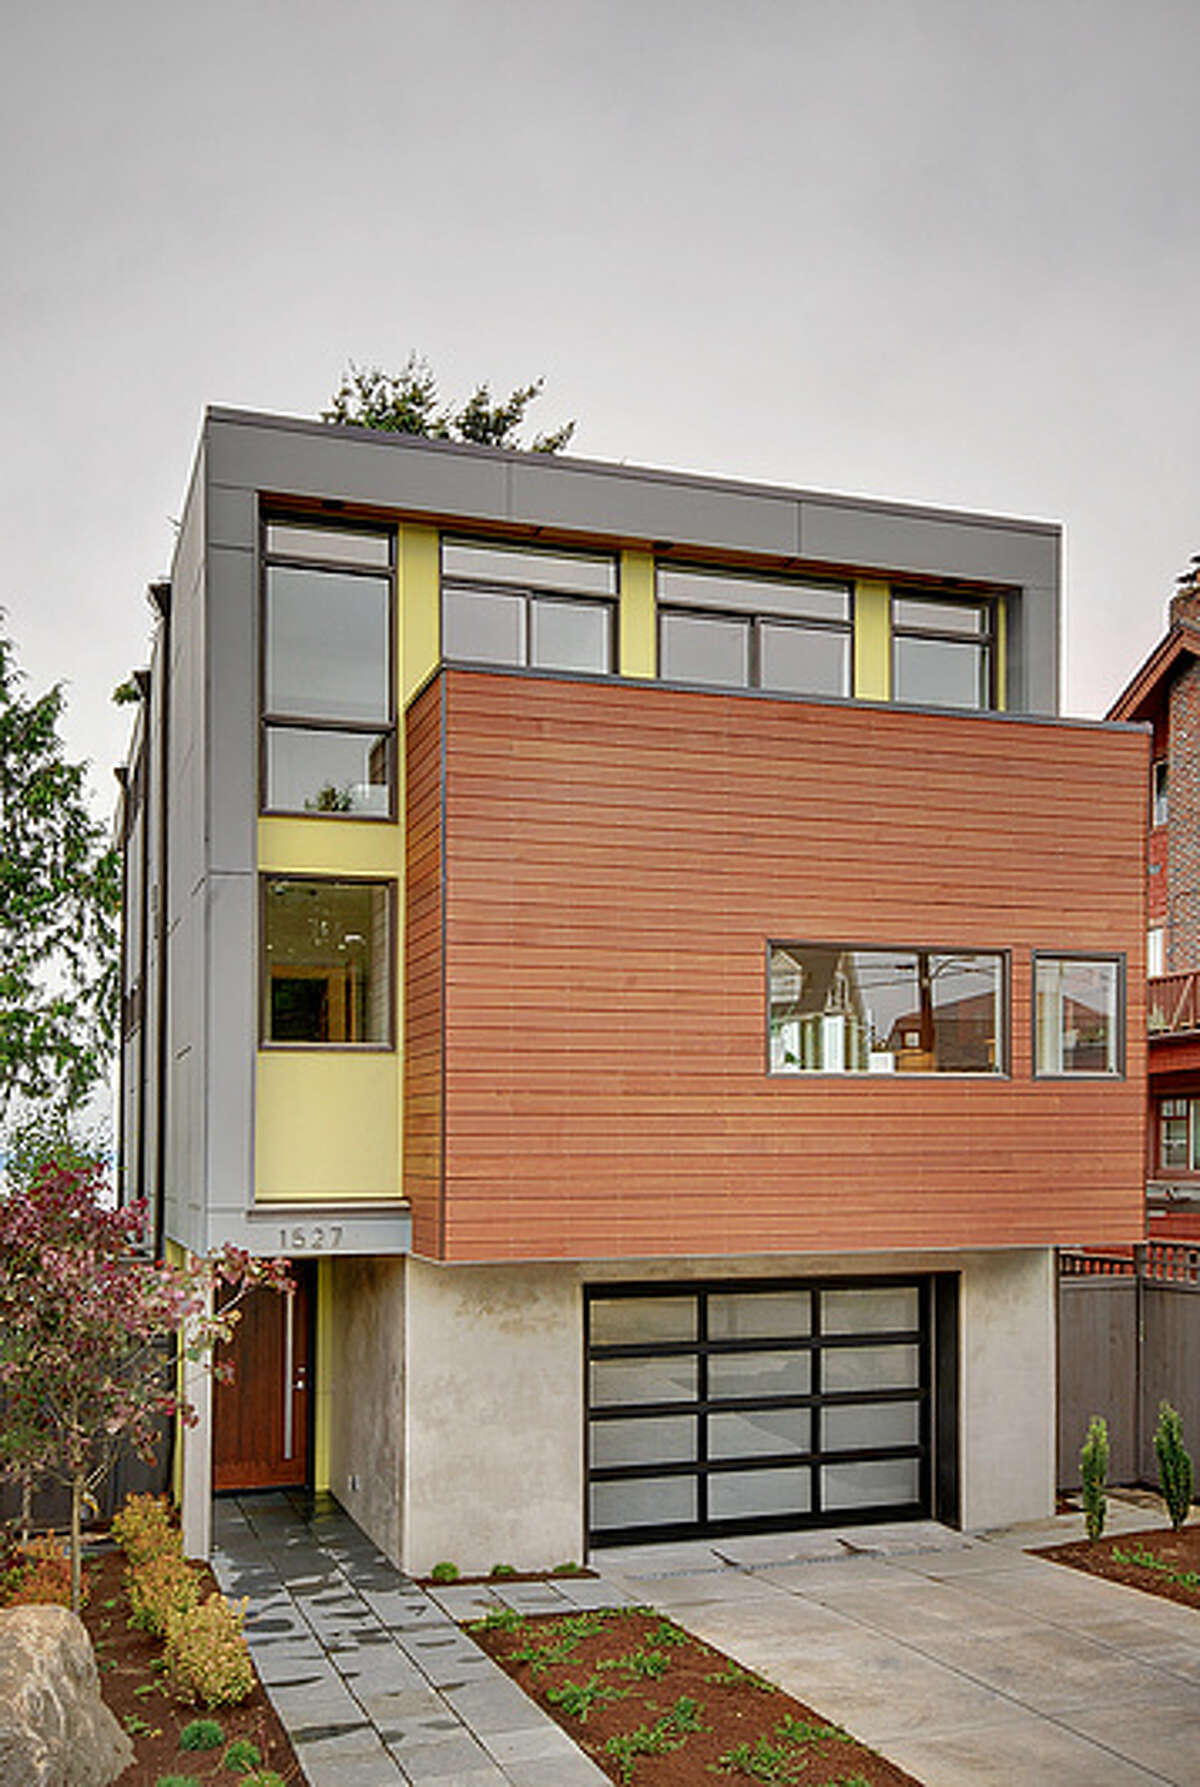 Contemporary homes generally employ clean lines, open floor plans, big windows, materials such as wood, metal and stone, and latest efficiencies. Here are a few examples built this year and on the market right now in West Seattle, starting with this house at 1527 Sunset Ave. S.W. The 2,850-square-foot house has three bedrooms and 3.5 bathrooms, with white oak cabinets and